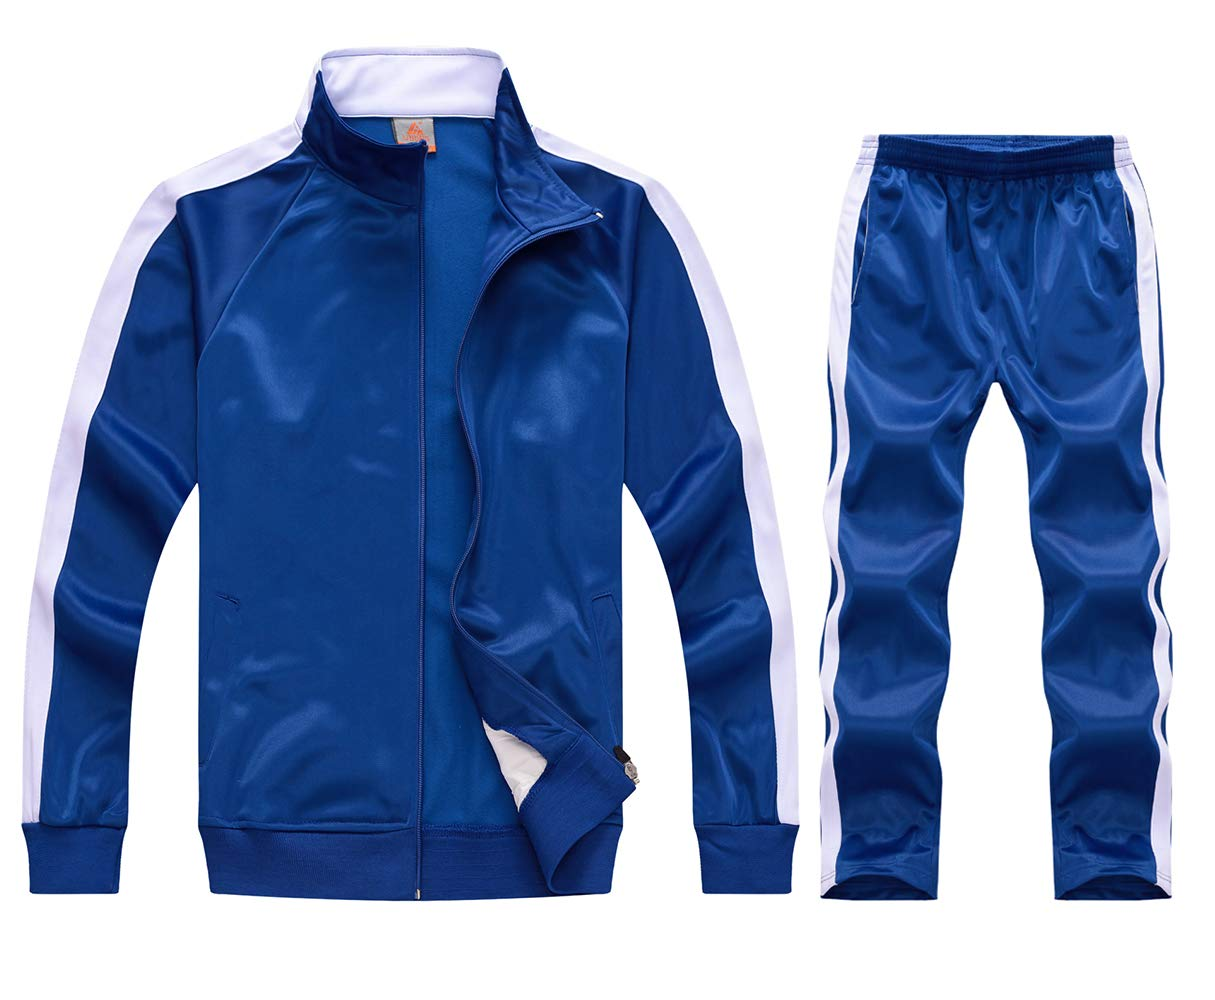 myglory77mall Running Jogging Tracksuit Jacket and Pants Warm Up Gym Wear 6801 Blue XS US(M Asian) by myglory77mall